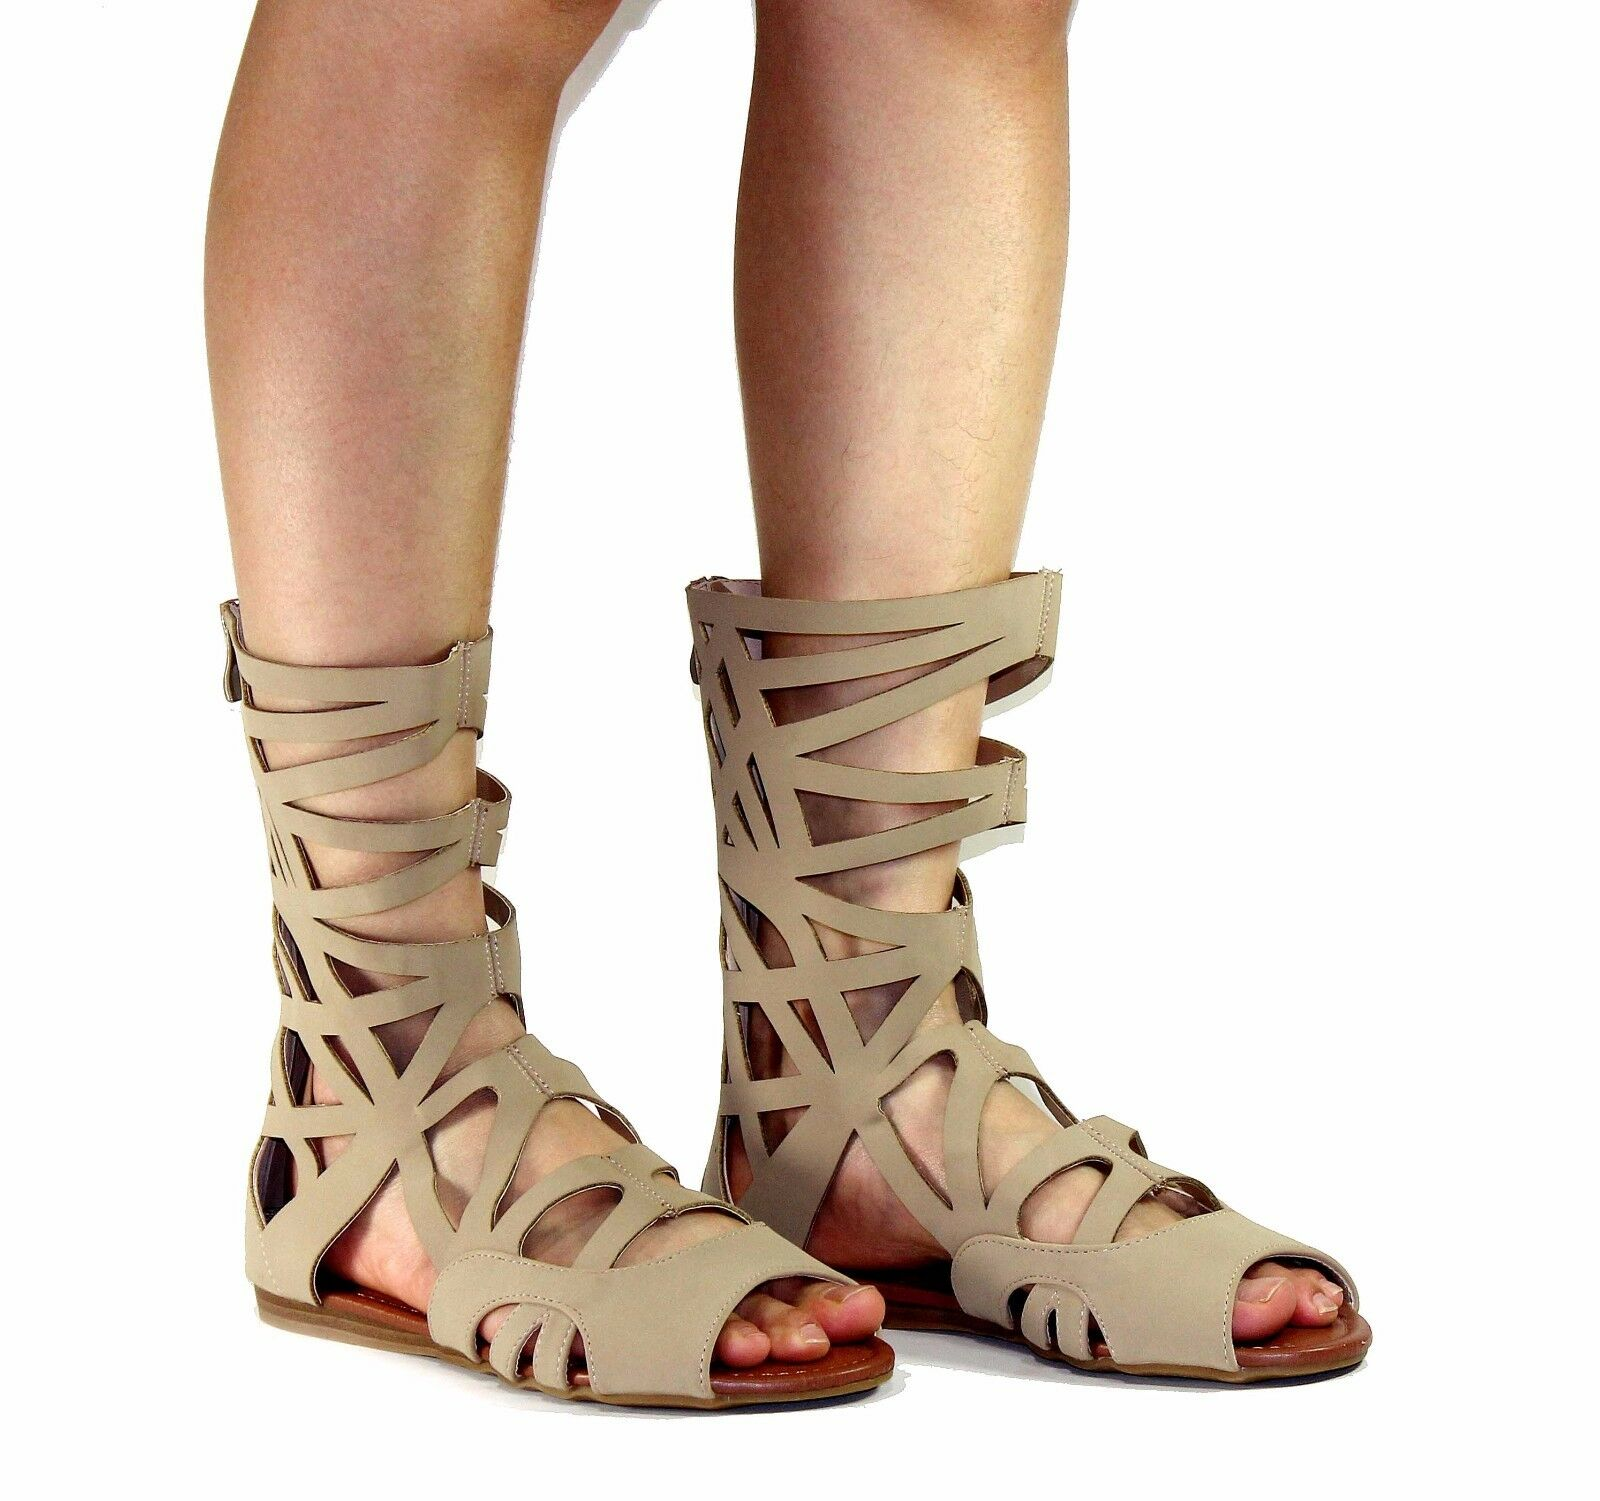 sonia-83 New Sandals Zipper Shoes Gladiator Party Beach Casual Women's Shoes Zipper Taupe a469f8